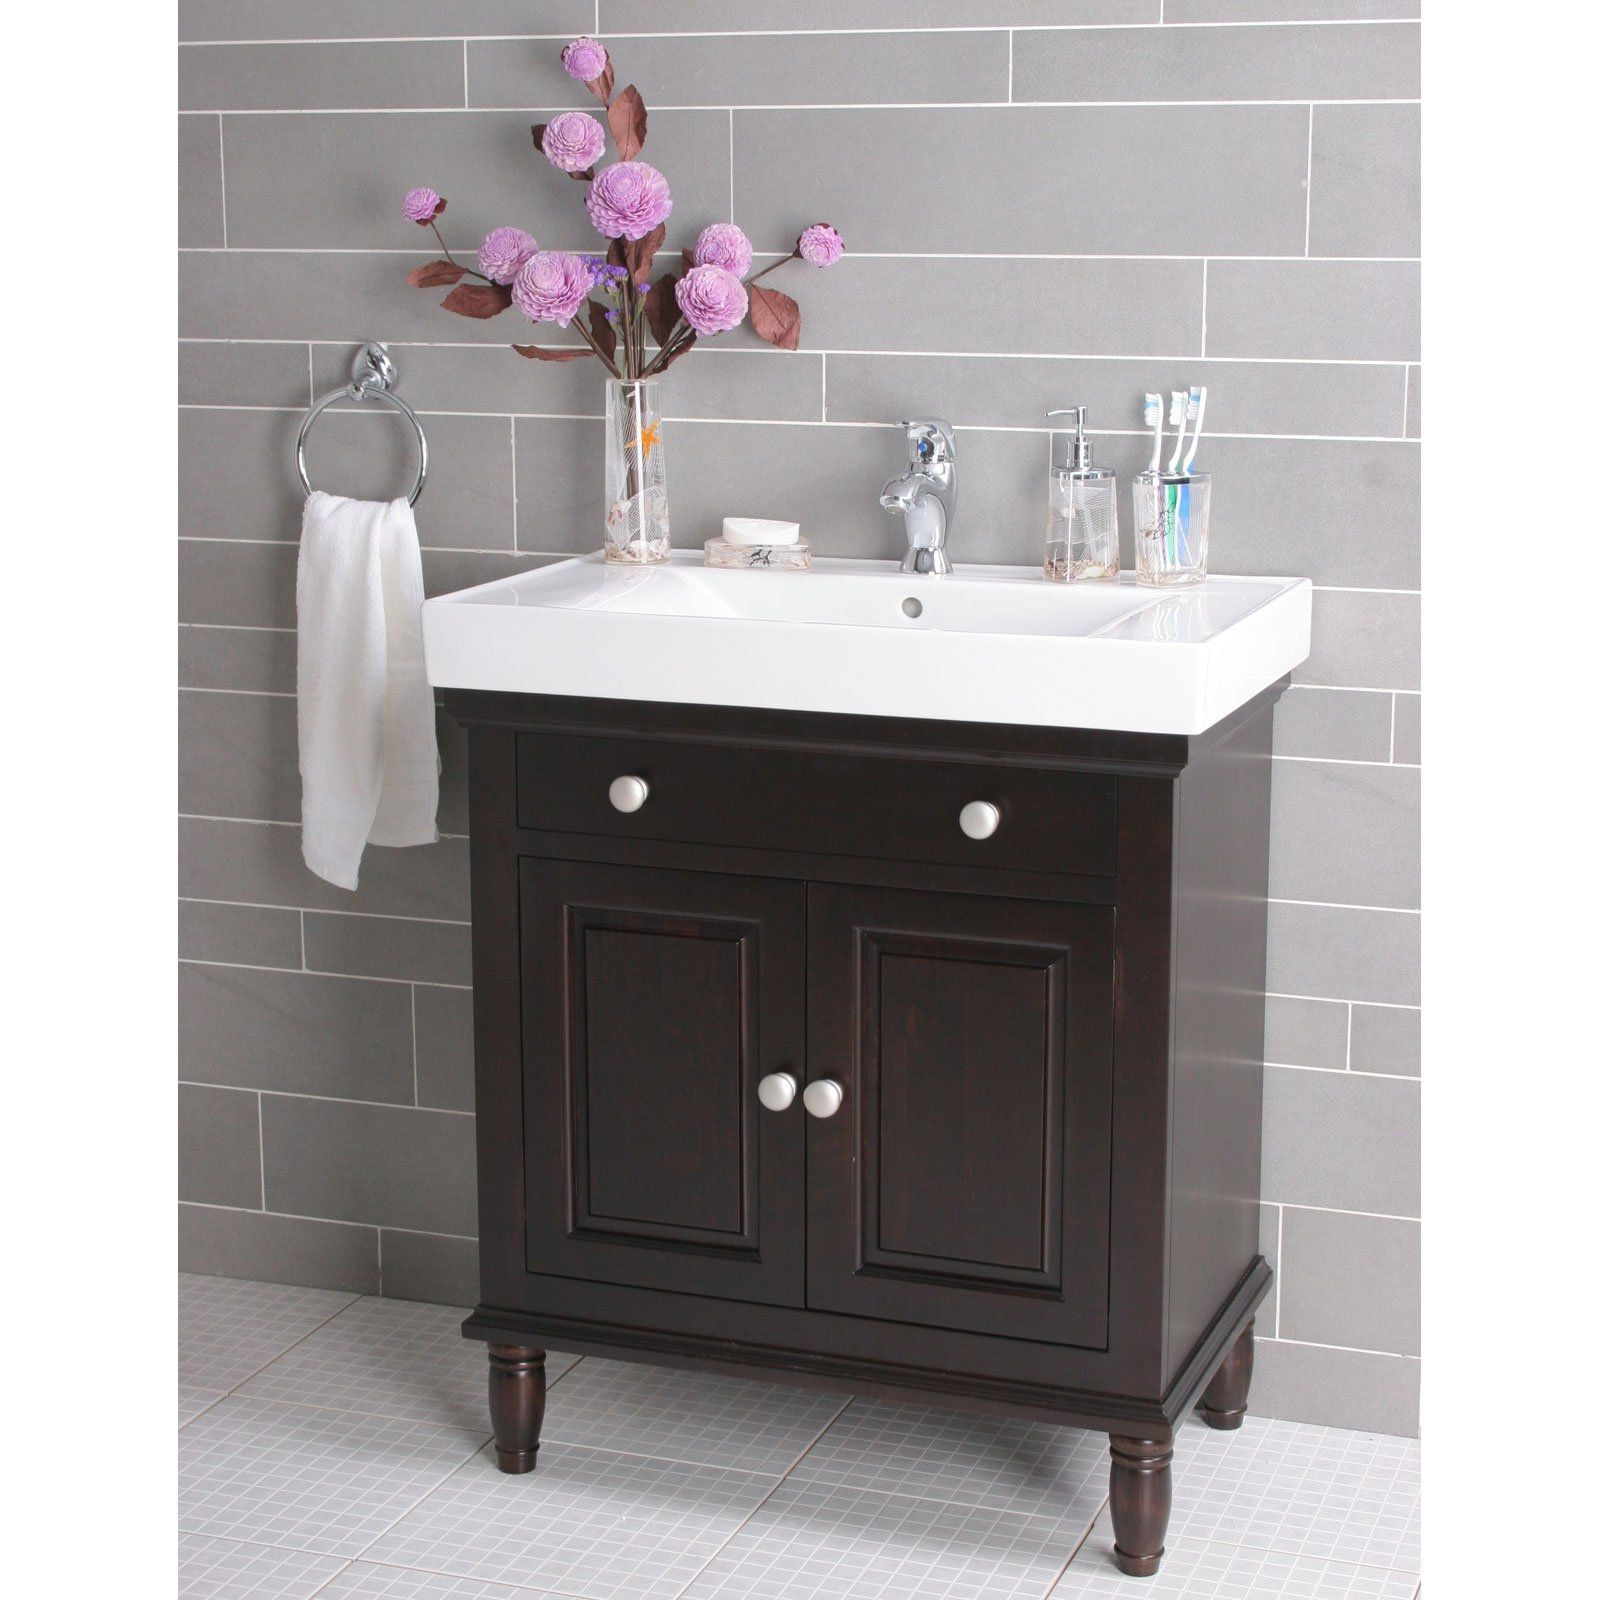 Bathroom Shallow Vanities On Inside Within Proportions 1600 X